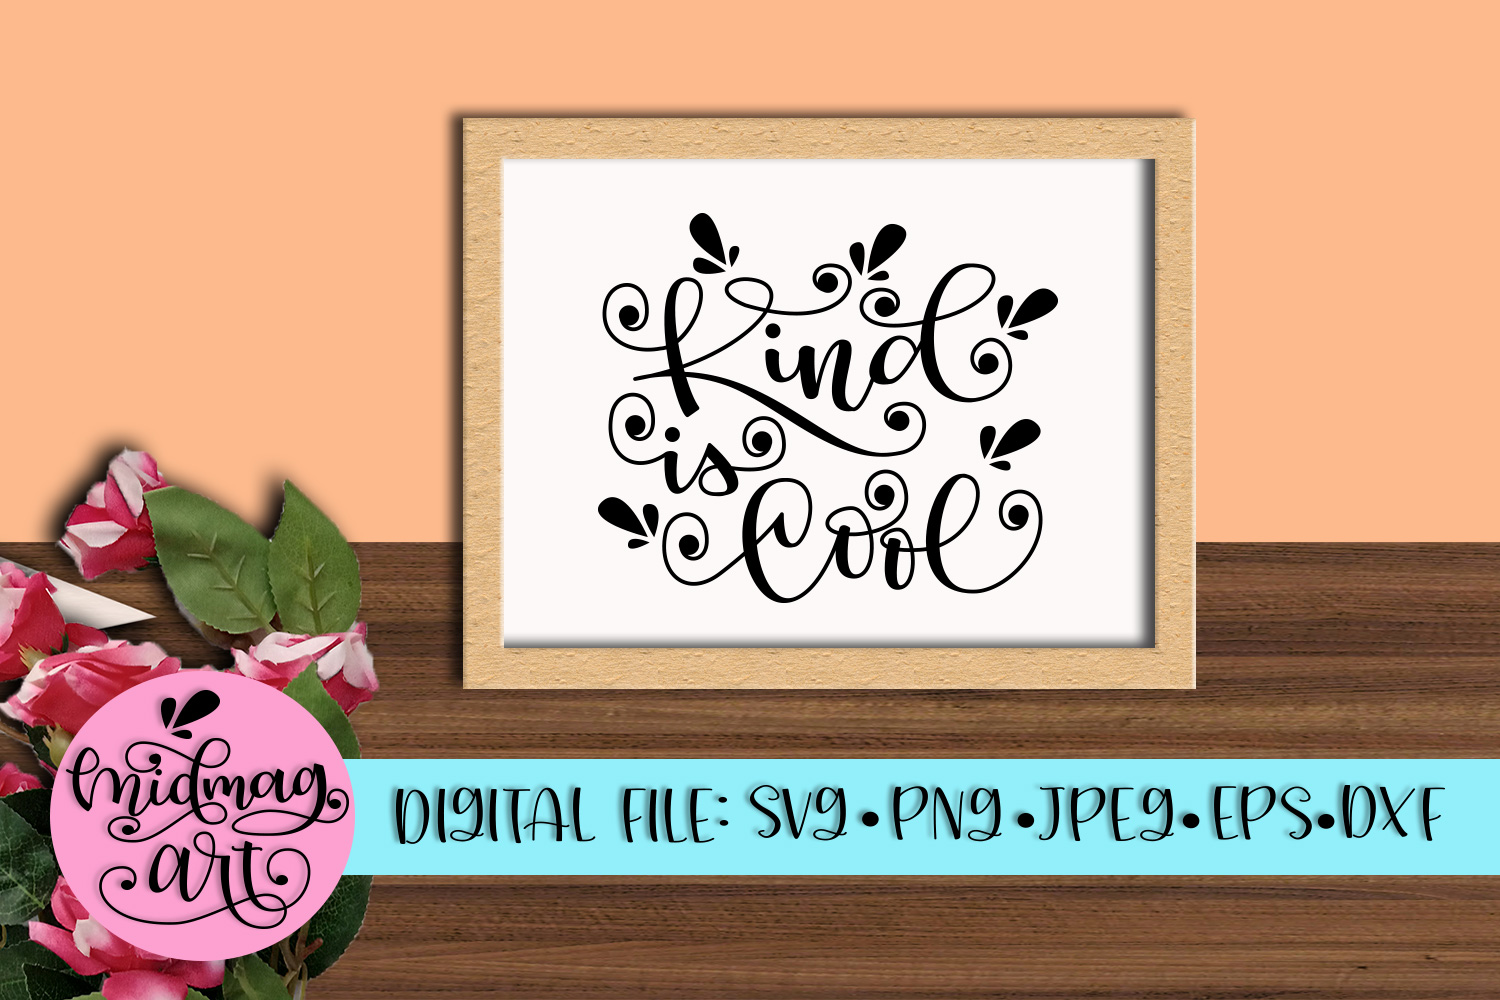 Kind is cool svg, png, jpeg, eps and dxf example image 3